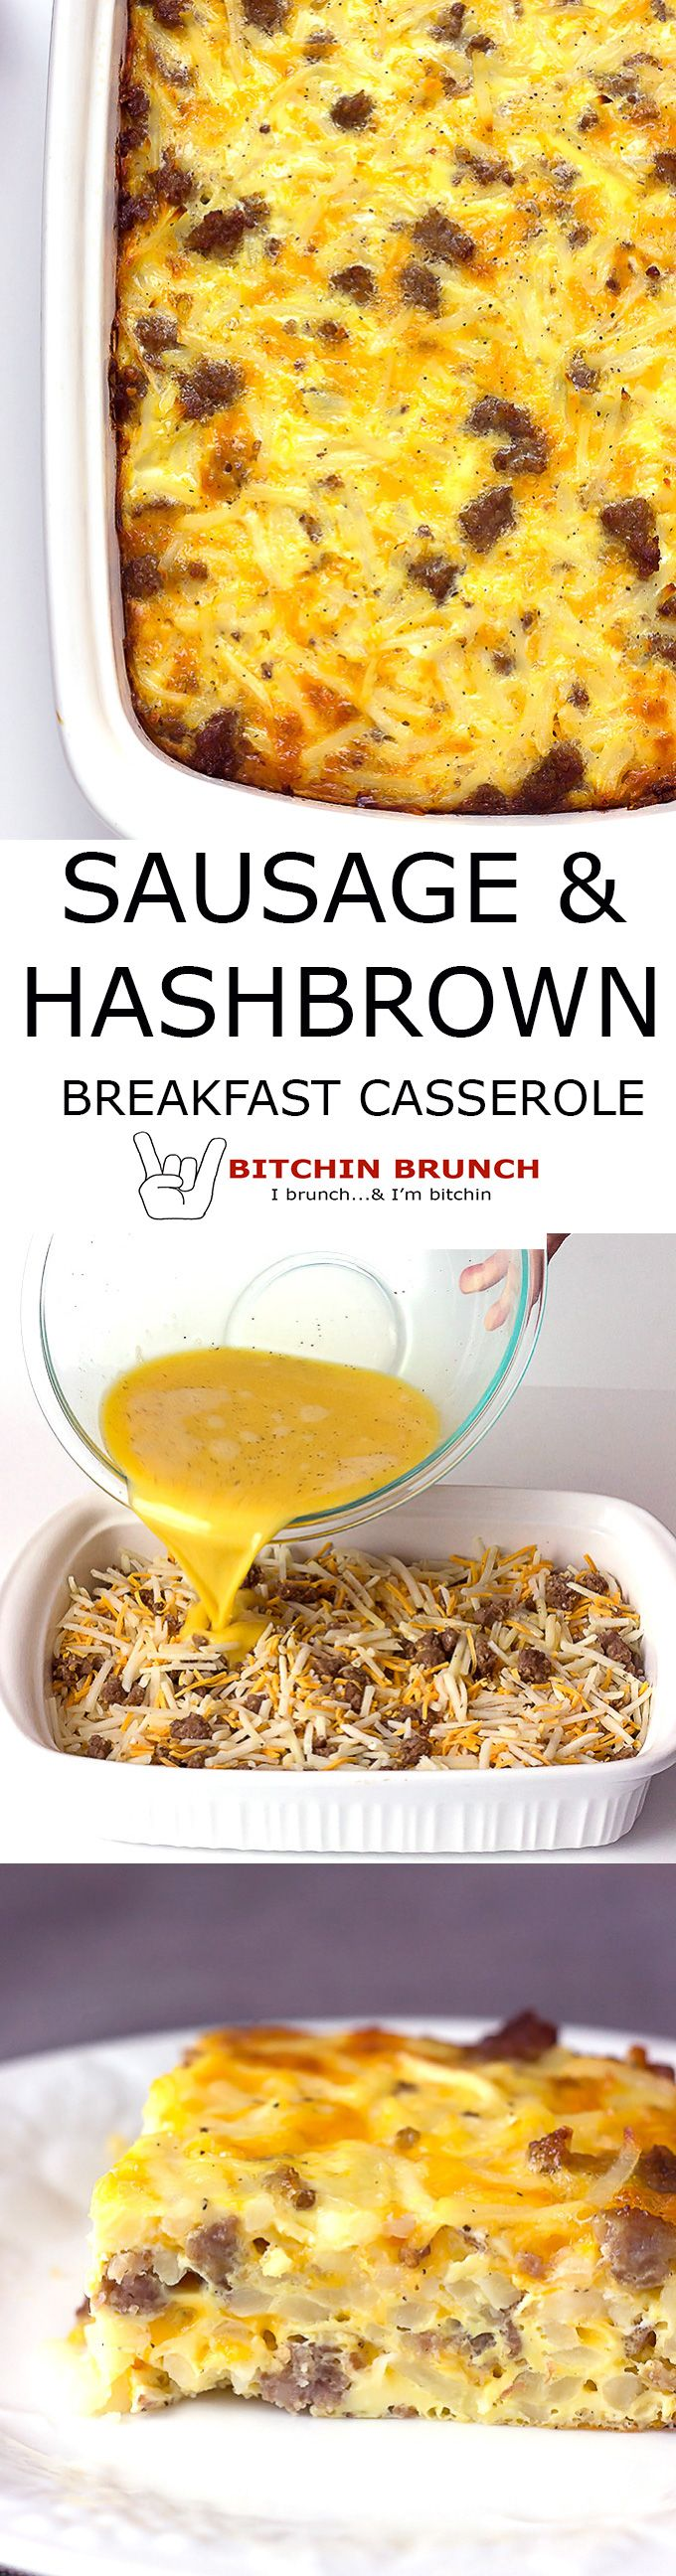 Sausage Hash Brown Breakfast Casserole - Can be a make ahead breakfast casserole that you let rest overnight.  Or make it the morning you want it.  Simple shit!